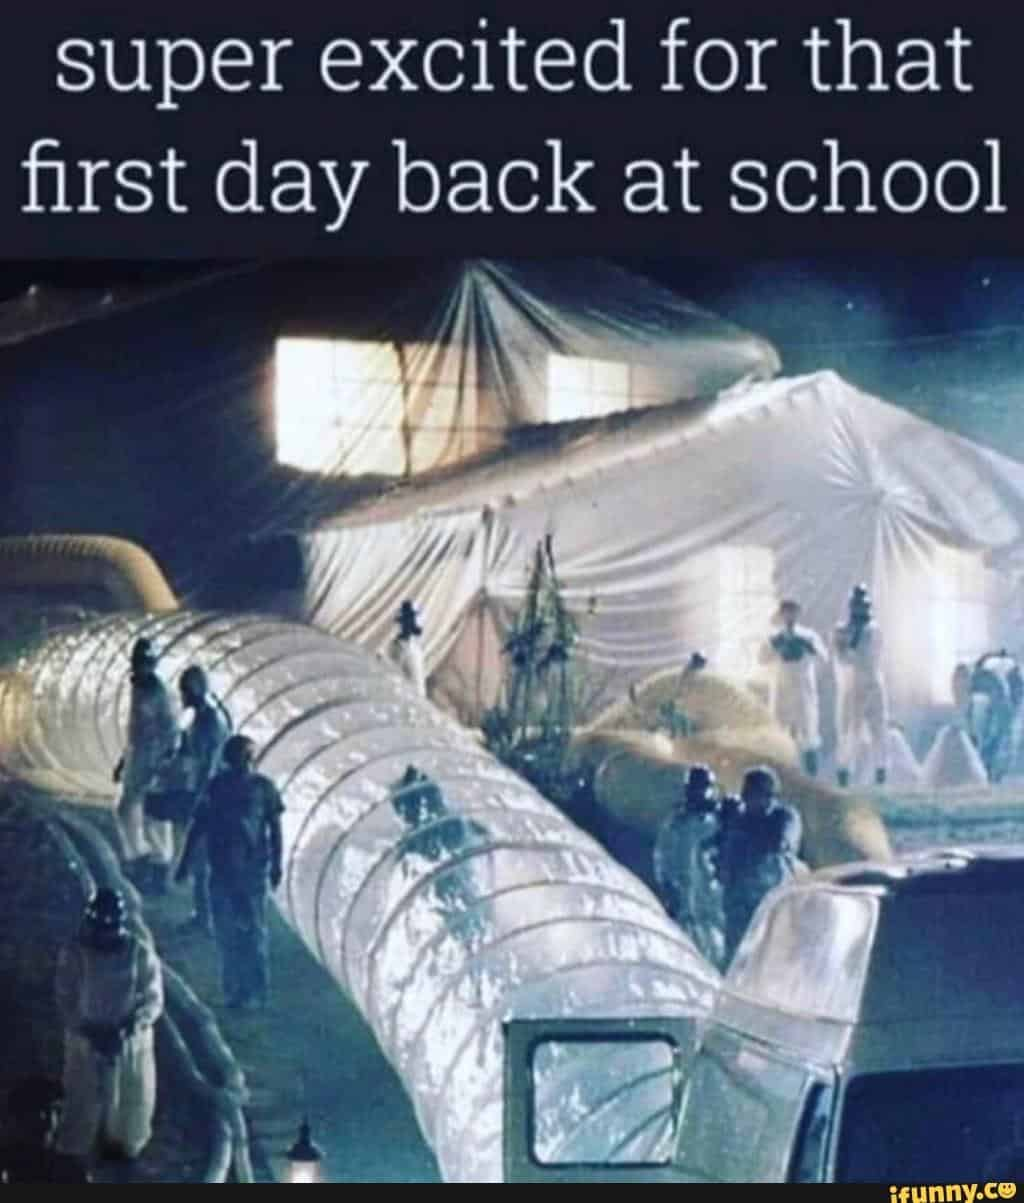 There's nothing like going back to school on the first day!